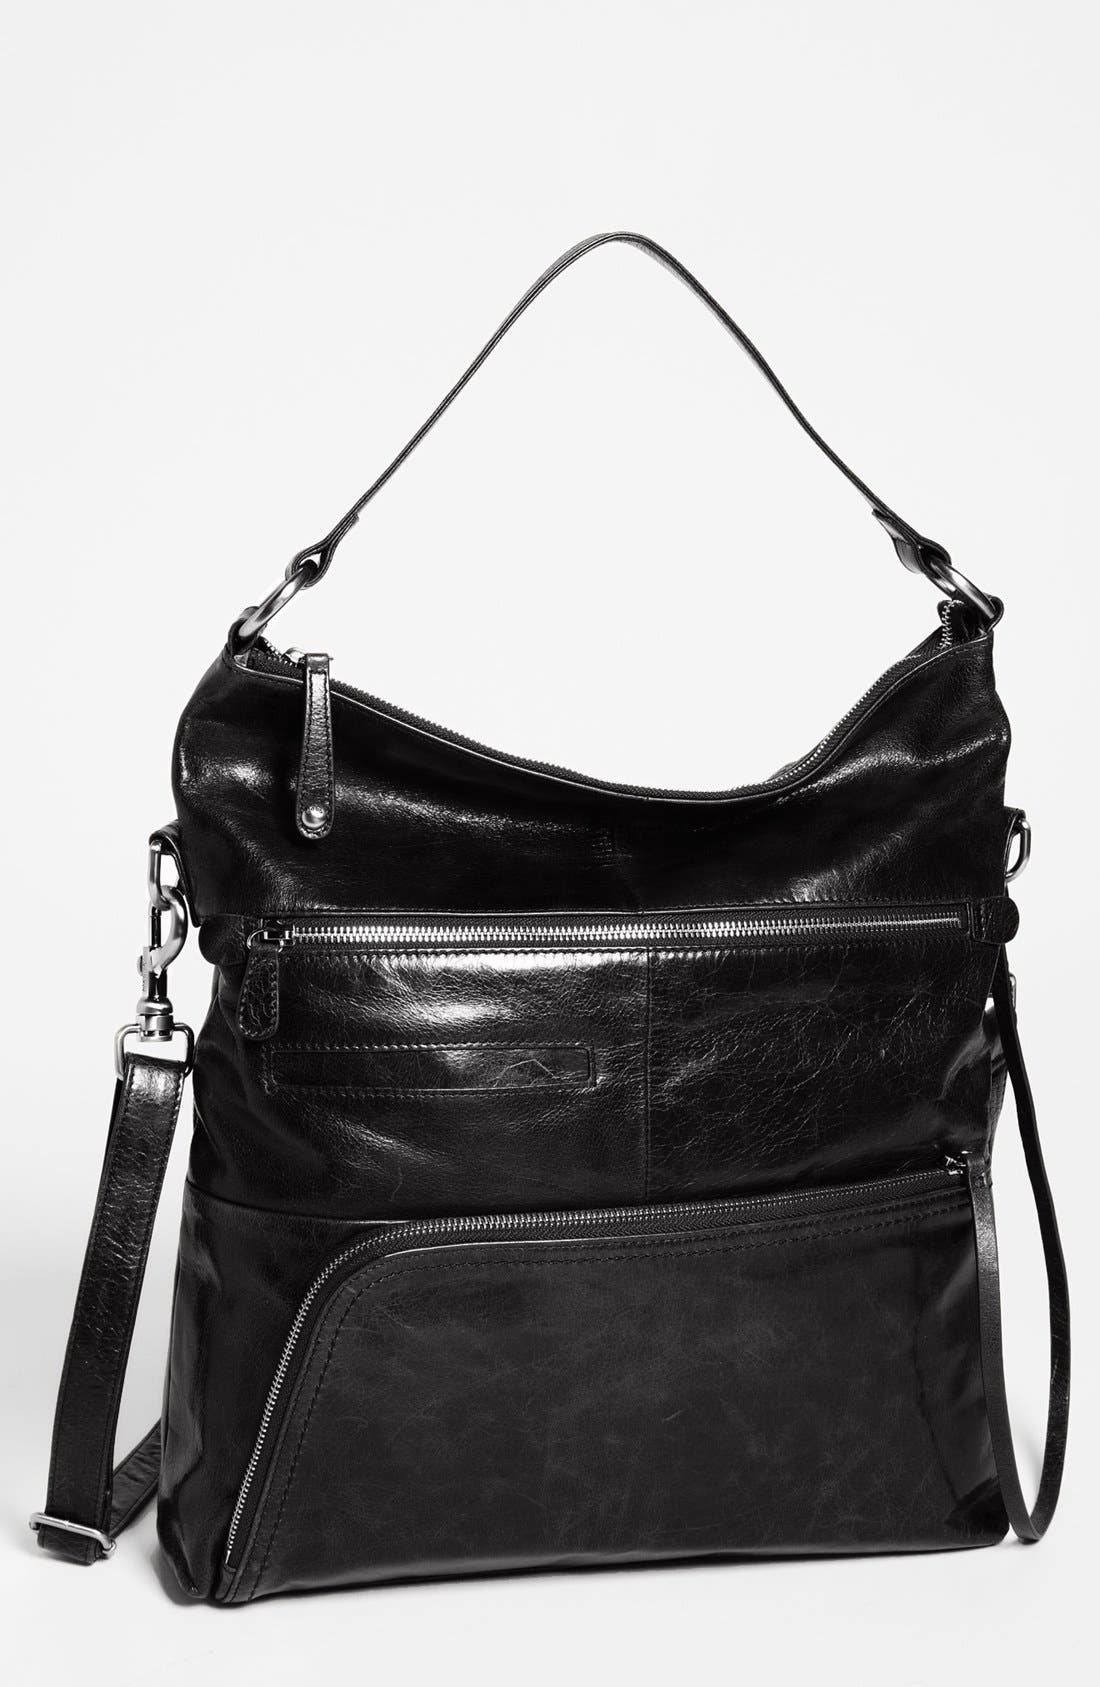 Main Image - Hobo 'Quinn' Leather Hobo